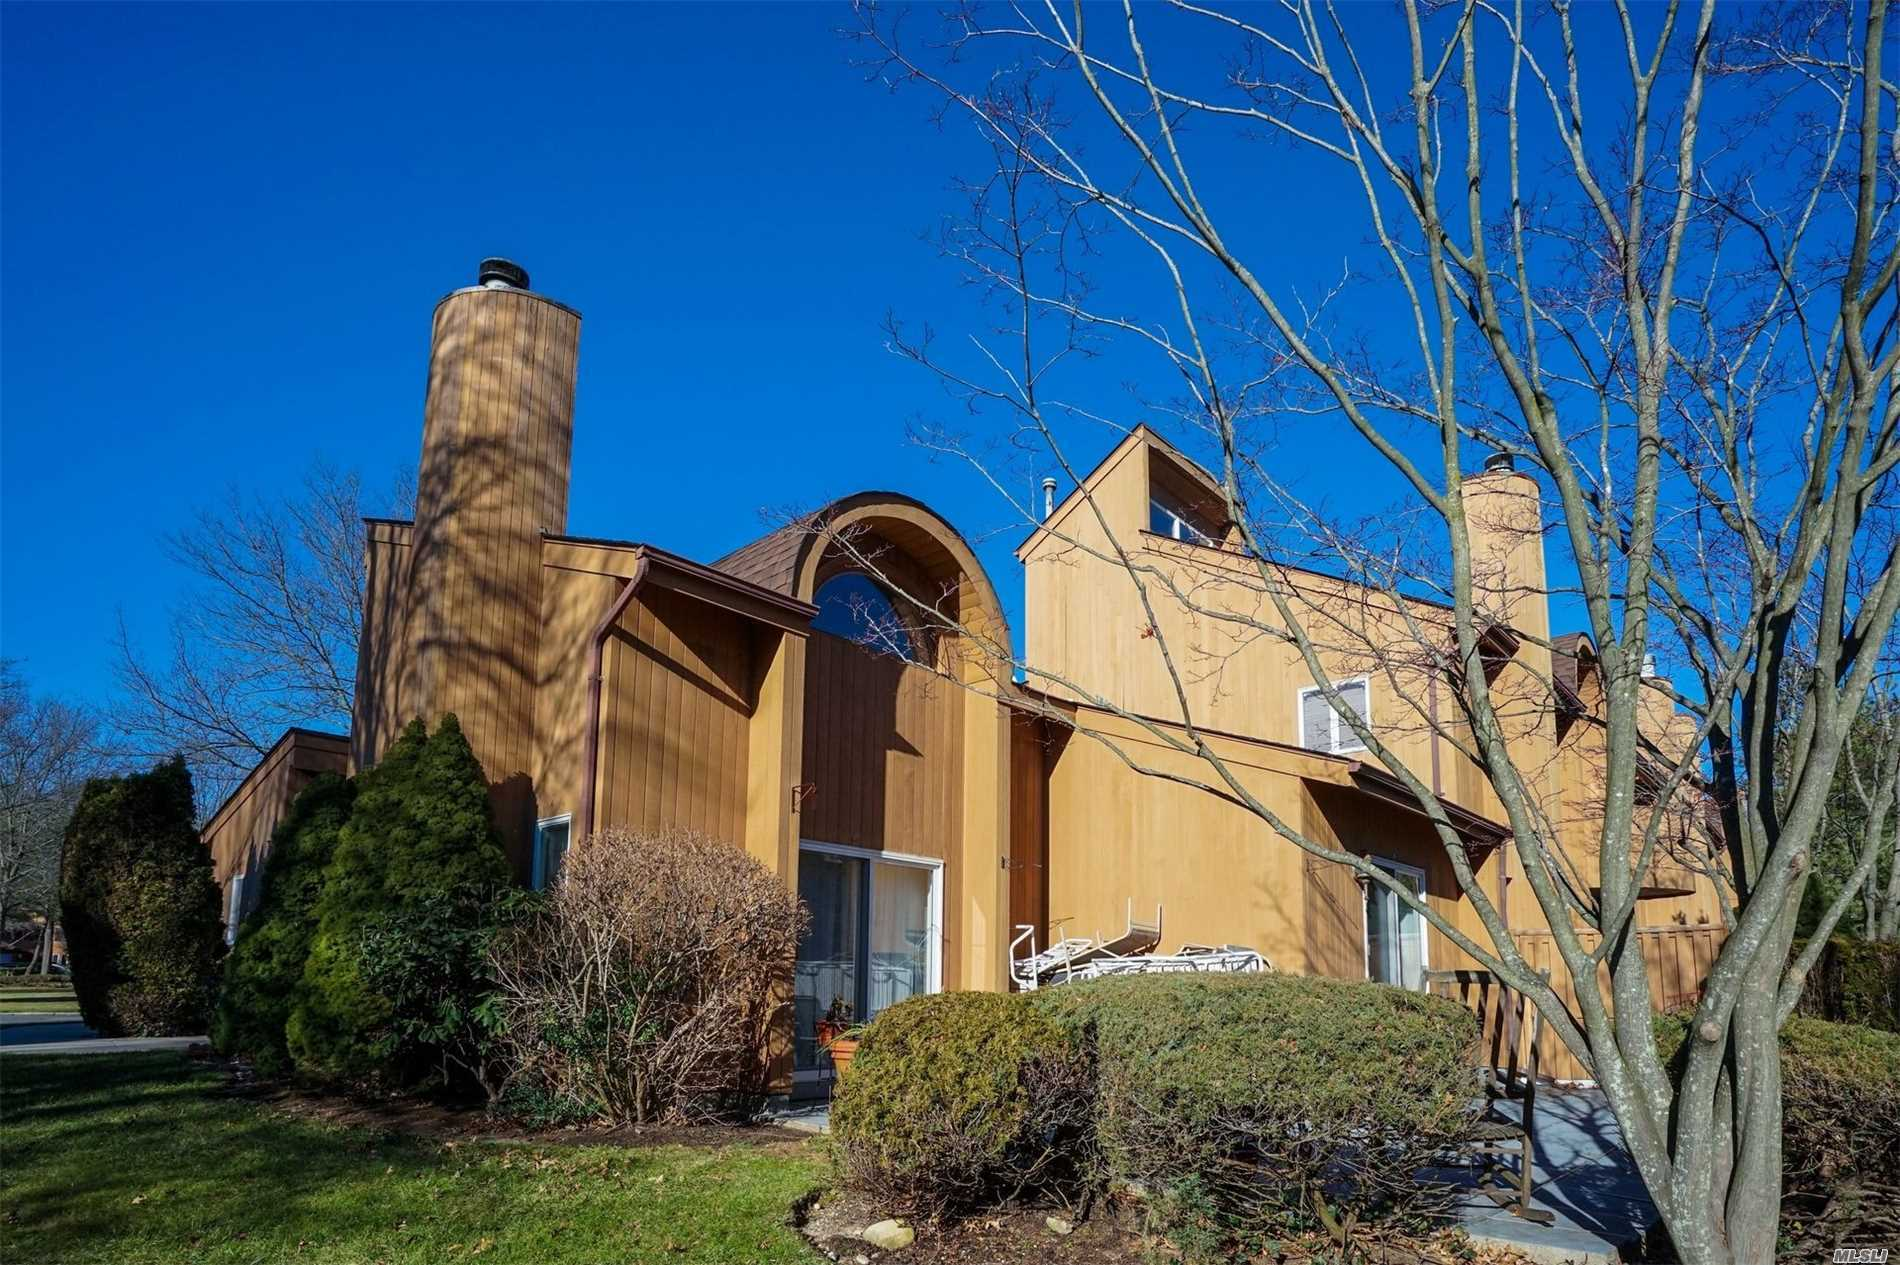 Property for sale at 6 Kristin Ln, Hauppauge,  NY 11788